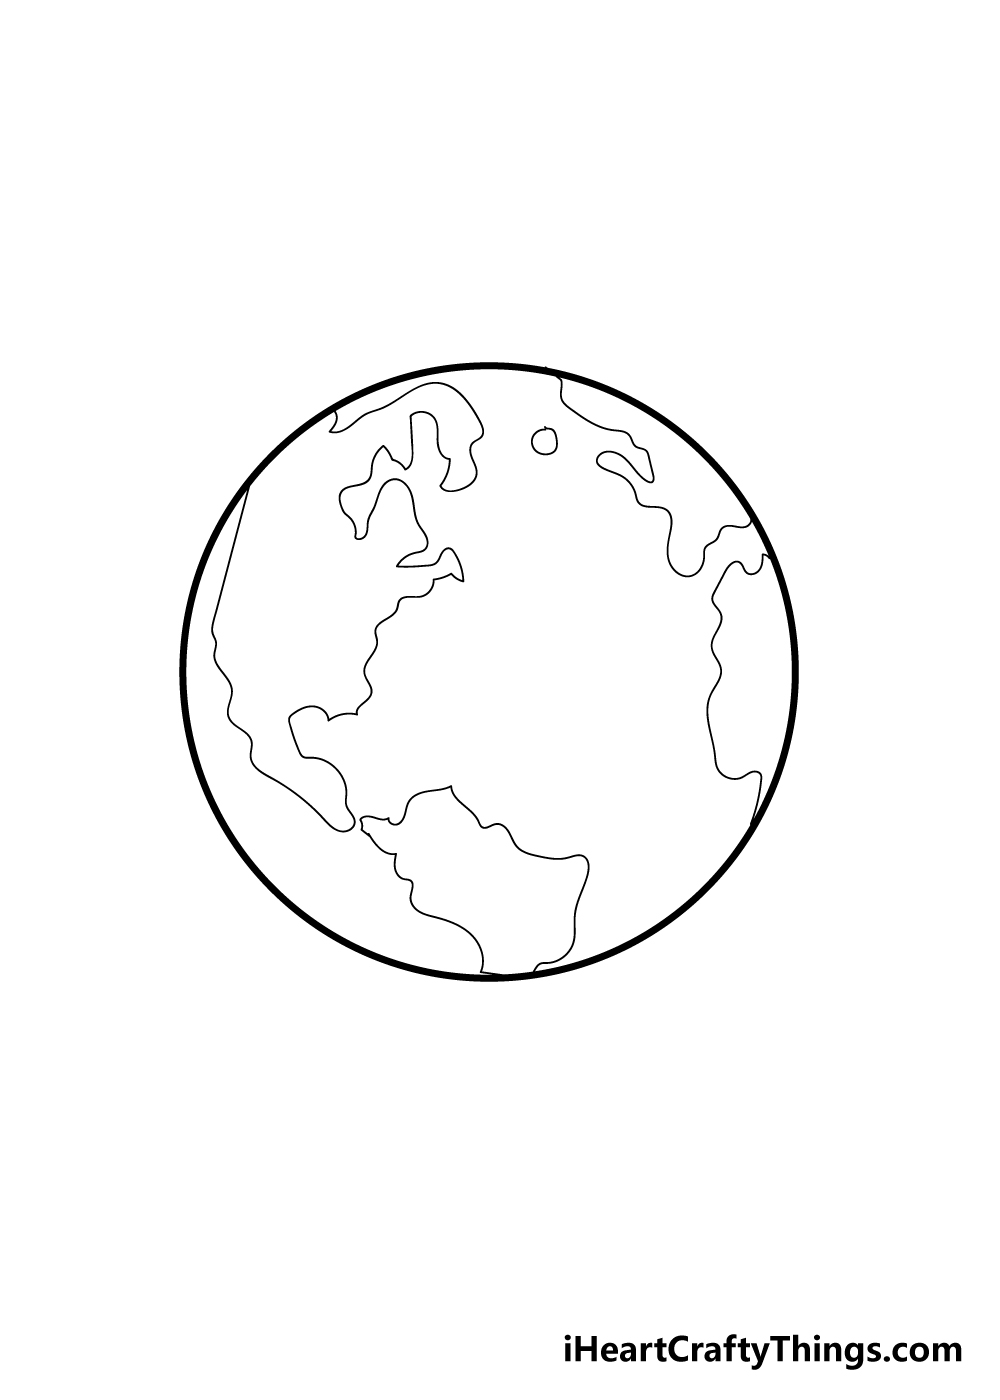 earth drawing step 5